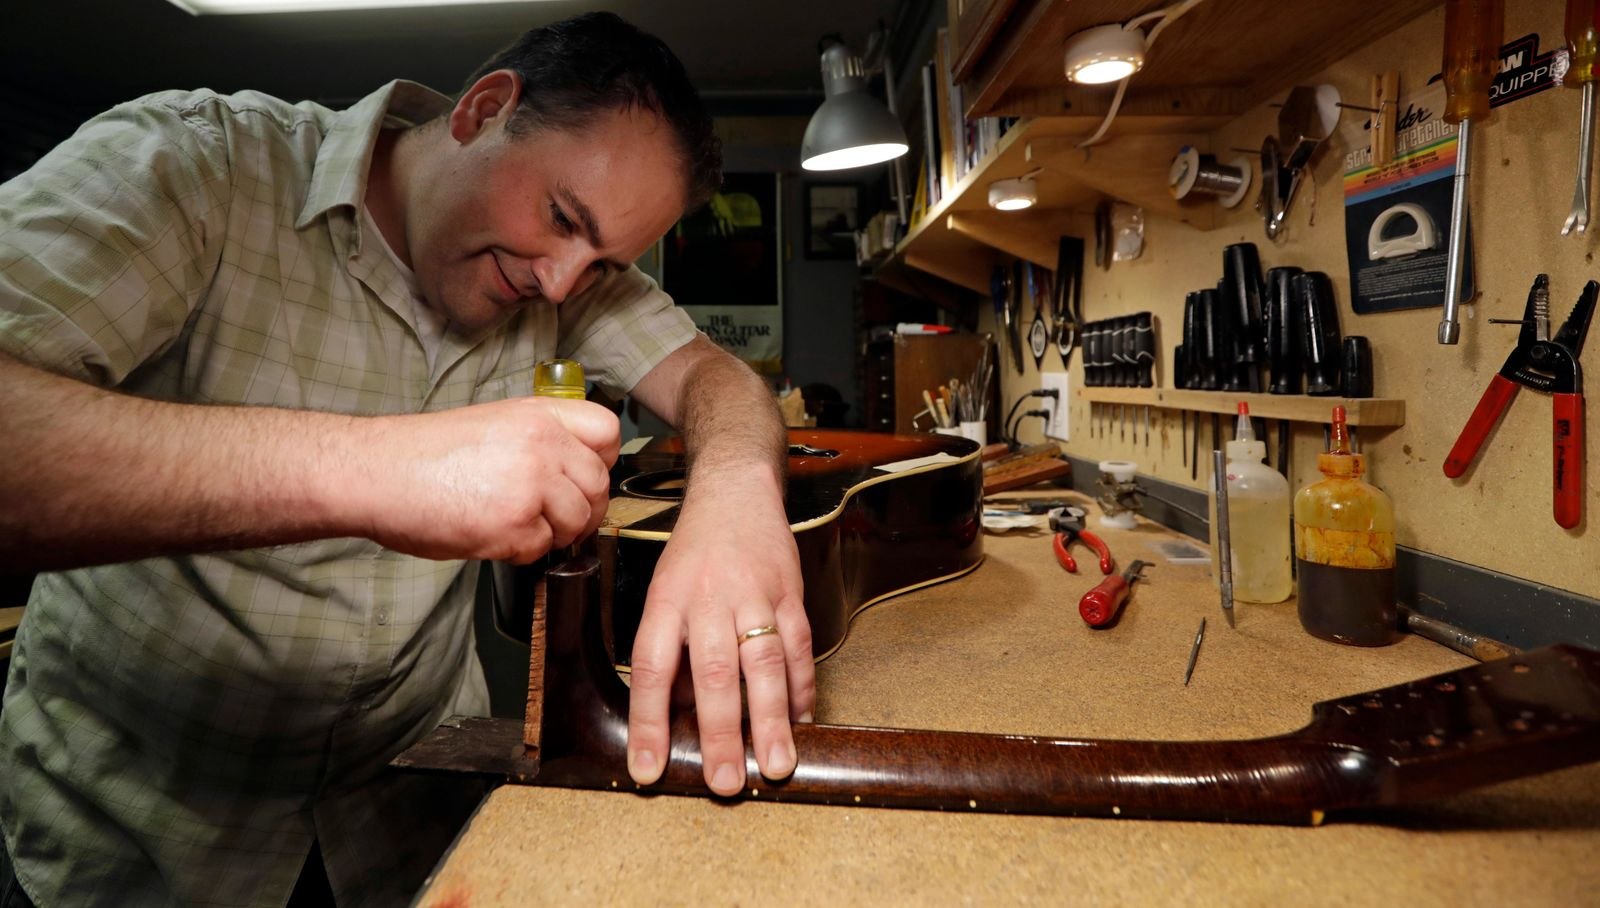 Jacob Tuel, owner of Burning River Guitars, repairs the neck on a guitar, Monday, June 10, 2019, in Akron, Ohio. Tuel named his guitar shop after the 1969 blaze on the Cuyahoga River, in Cleveland. (AP Photo/Tony Dejak)